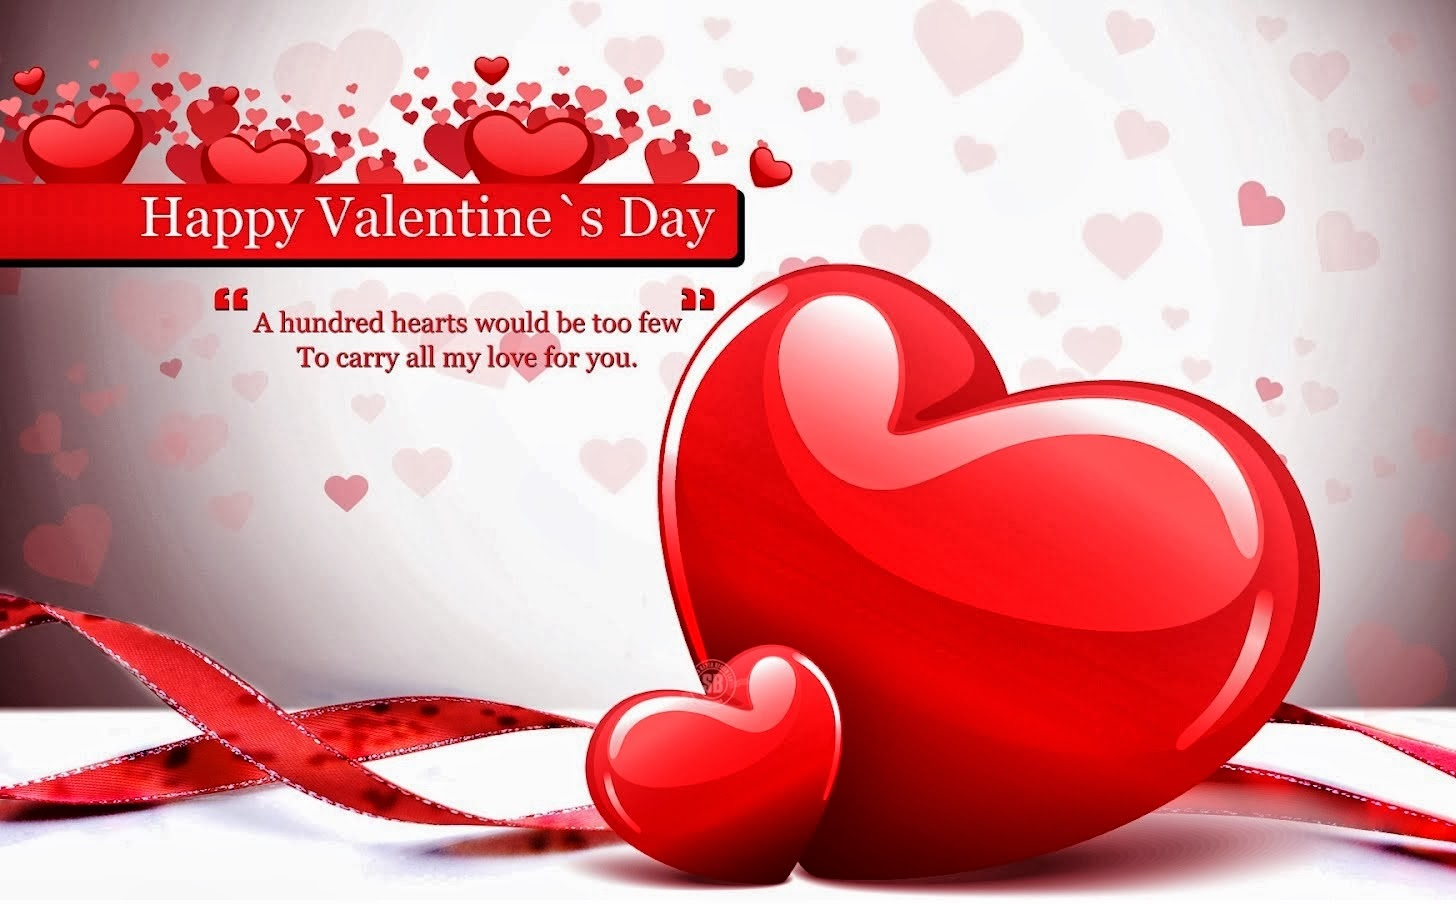 Valentine Wallpapers Happy Day 2015 Valetines Lovers Kissing